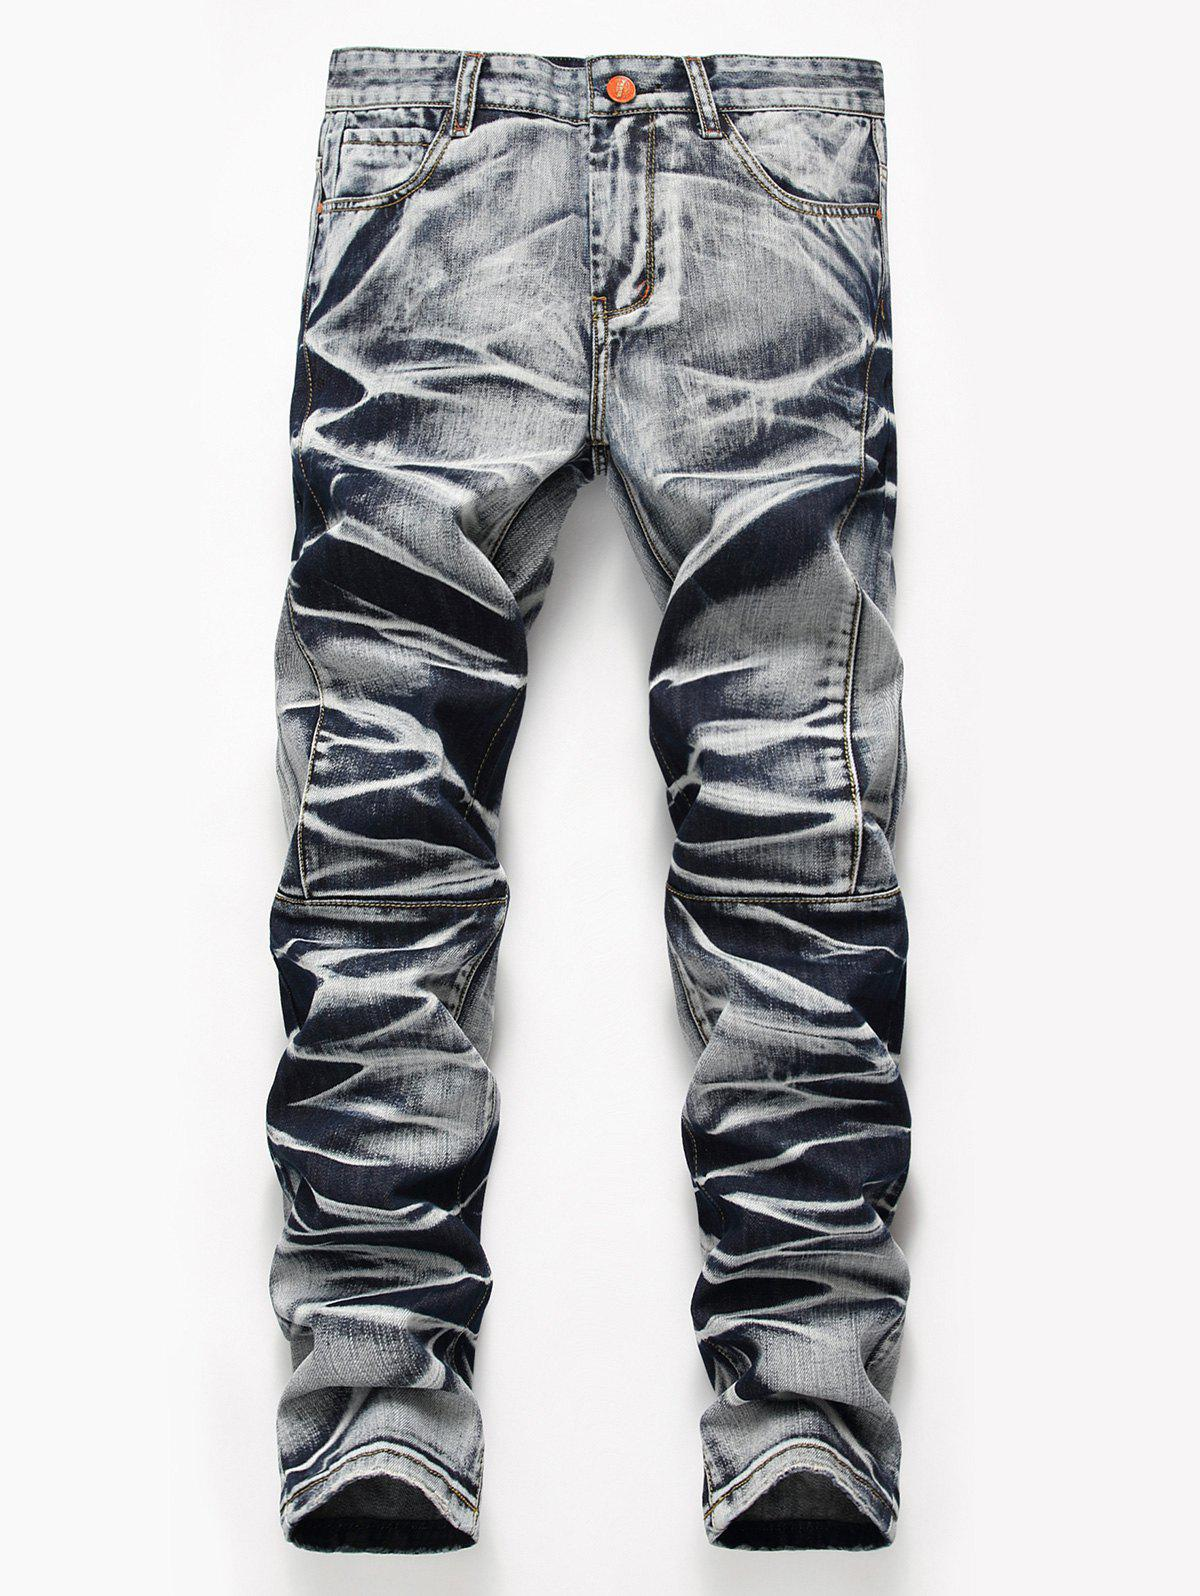 Tie Dye Zip Fly Straight JeansMEN<br><br>Size: 40; Color: COLORMIX; Material: Cotton,Polyester; Pant Length: Long Pants; Wash: Medium; Fit Type: Regular; Waist Type: Mid; Closure Type: Zipper Fly; Weight: 0.7300kg; Pant Style: Straight; Package Contents: 1 x Jeans; With Belt: No;